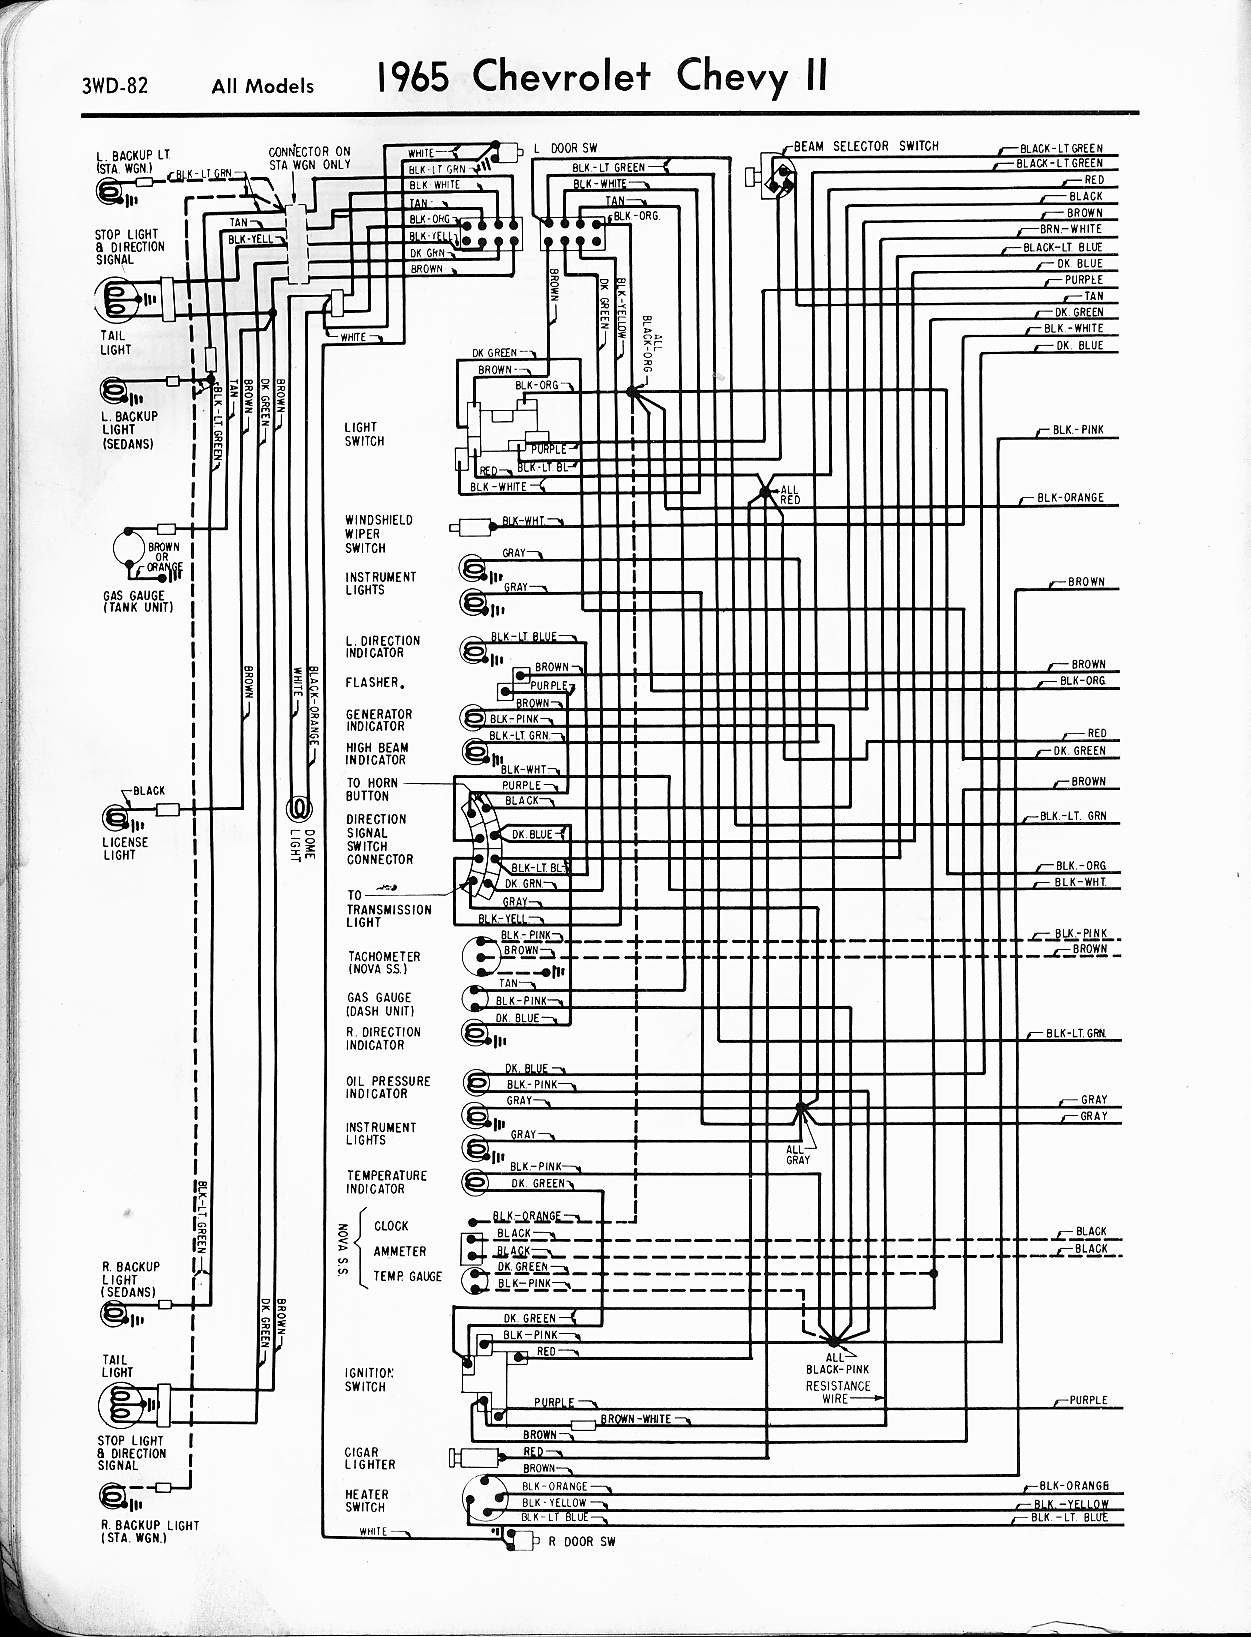 65 Falcon Wiring Diagram Nice Place To Get For 1965 Chevy Diagrams Rh Wizard Com 1963 Ford